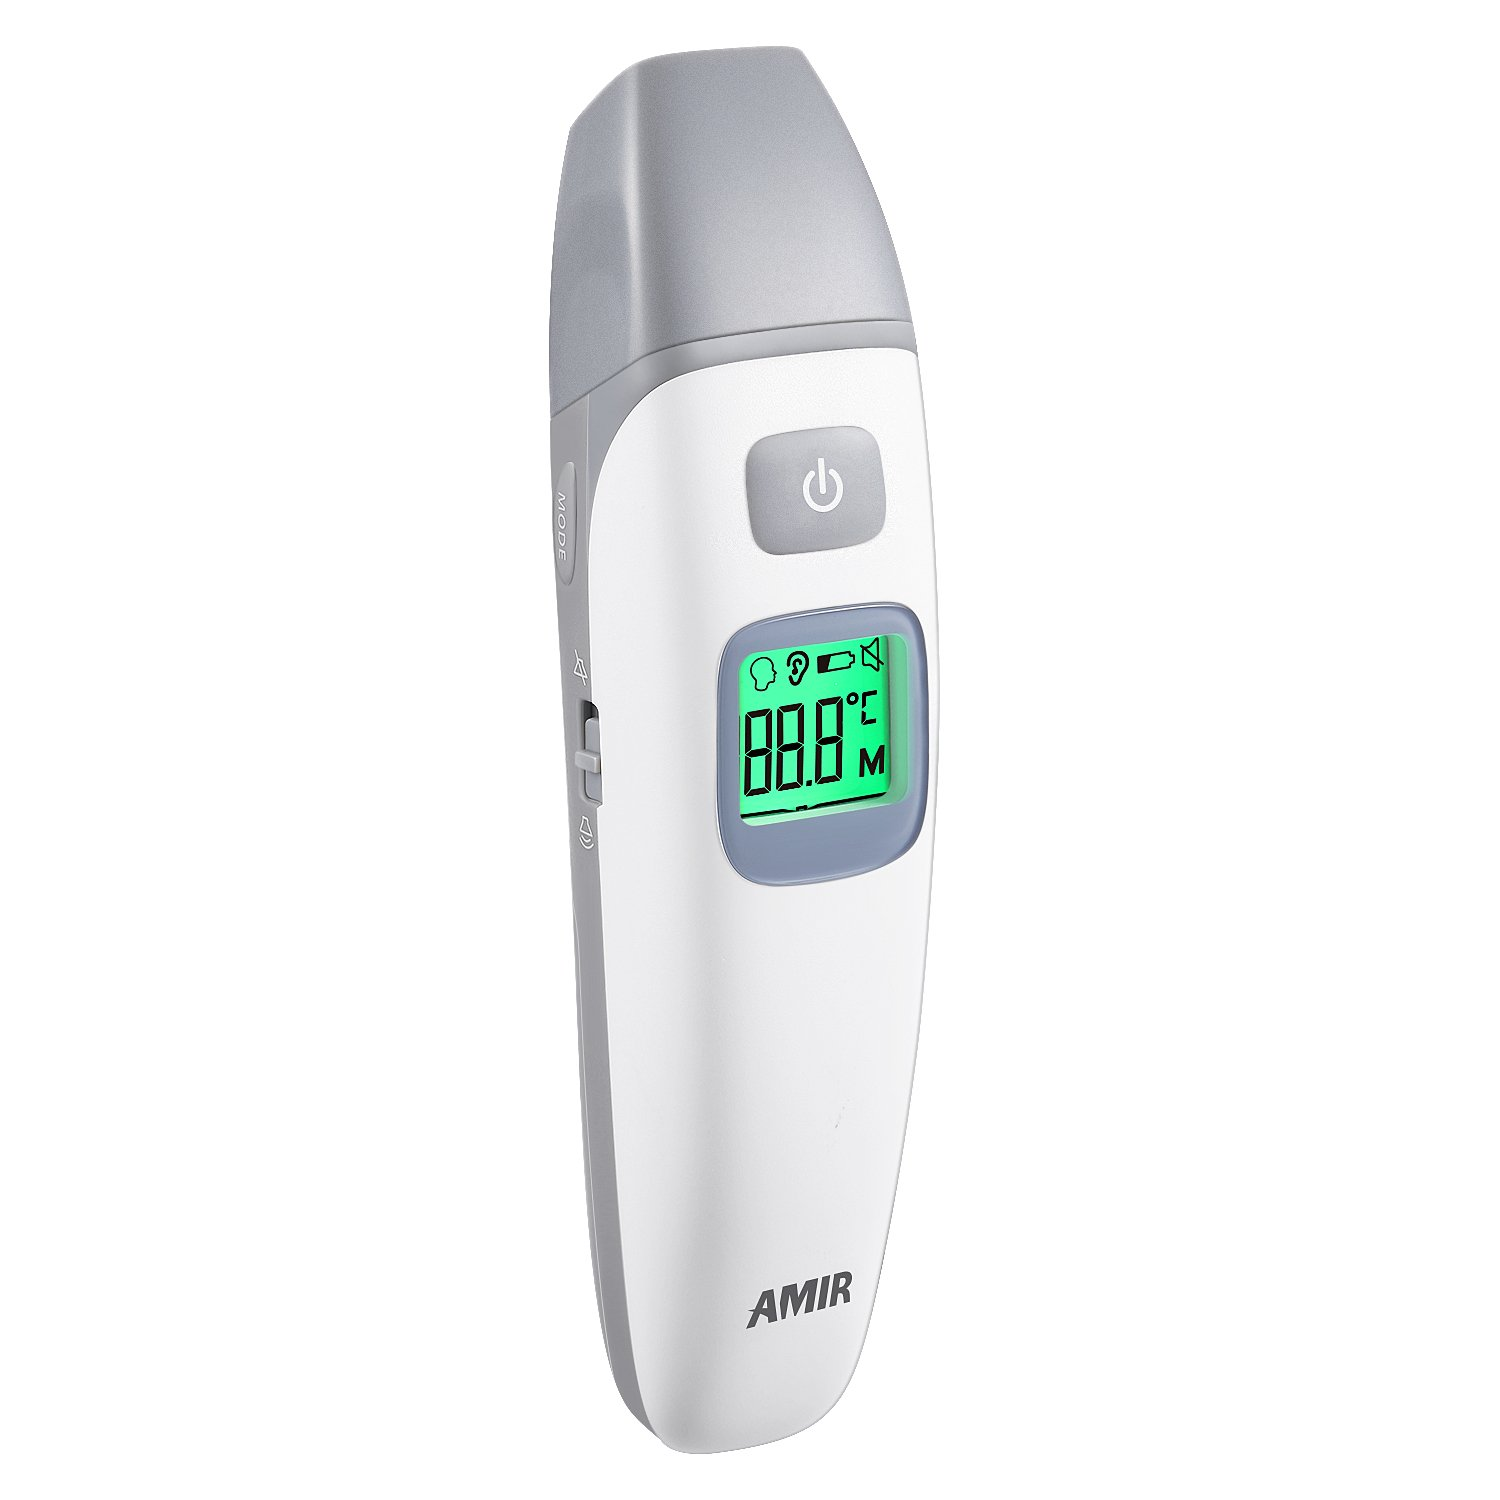 AMIR Forehead and Ear Thermometer, Infrared Digital Body Thermometer, Baby Thermometer with 1s Instant Read, Mute/Audible Switchable, FDA/CE/ISO Approved, Fever Alarm(Battery Included)